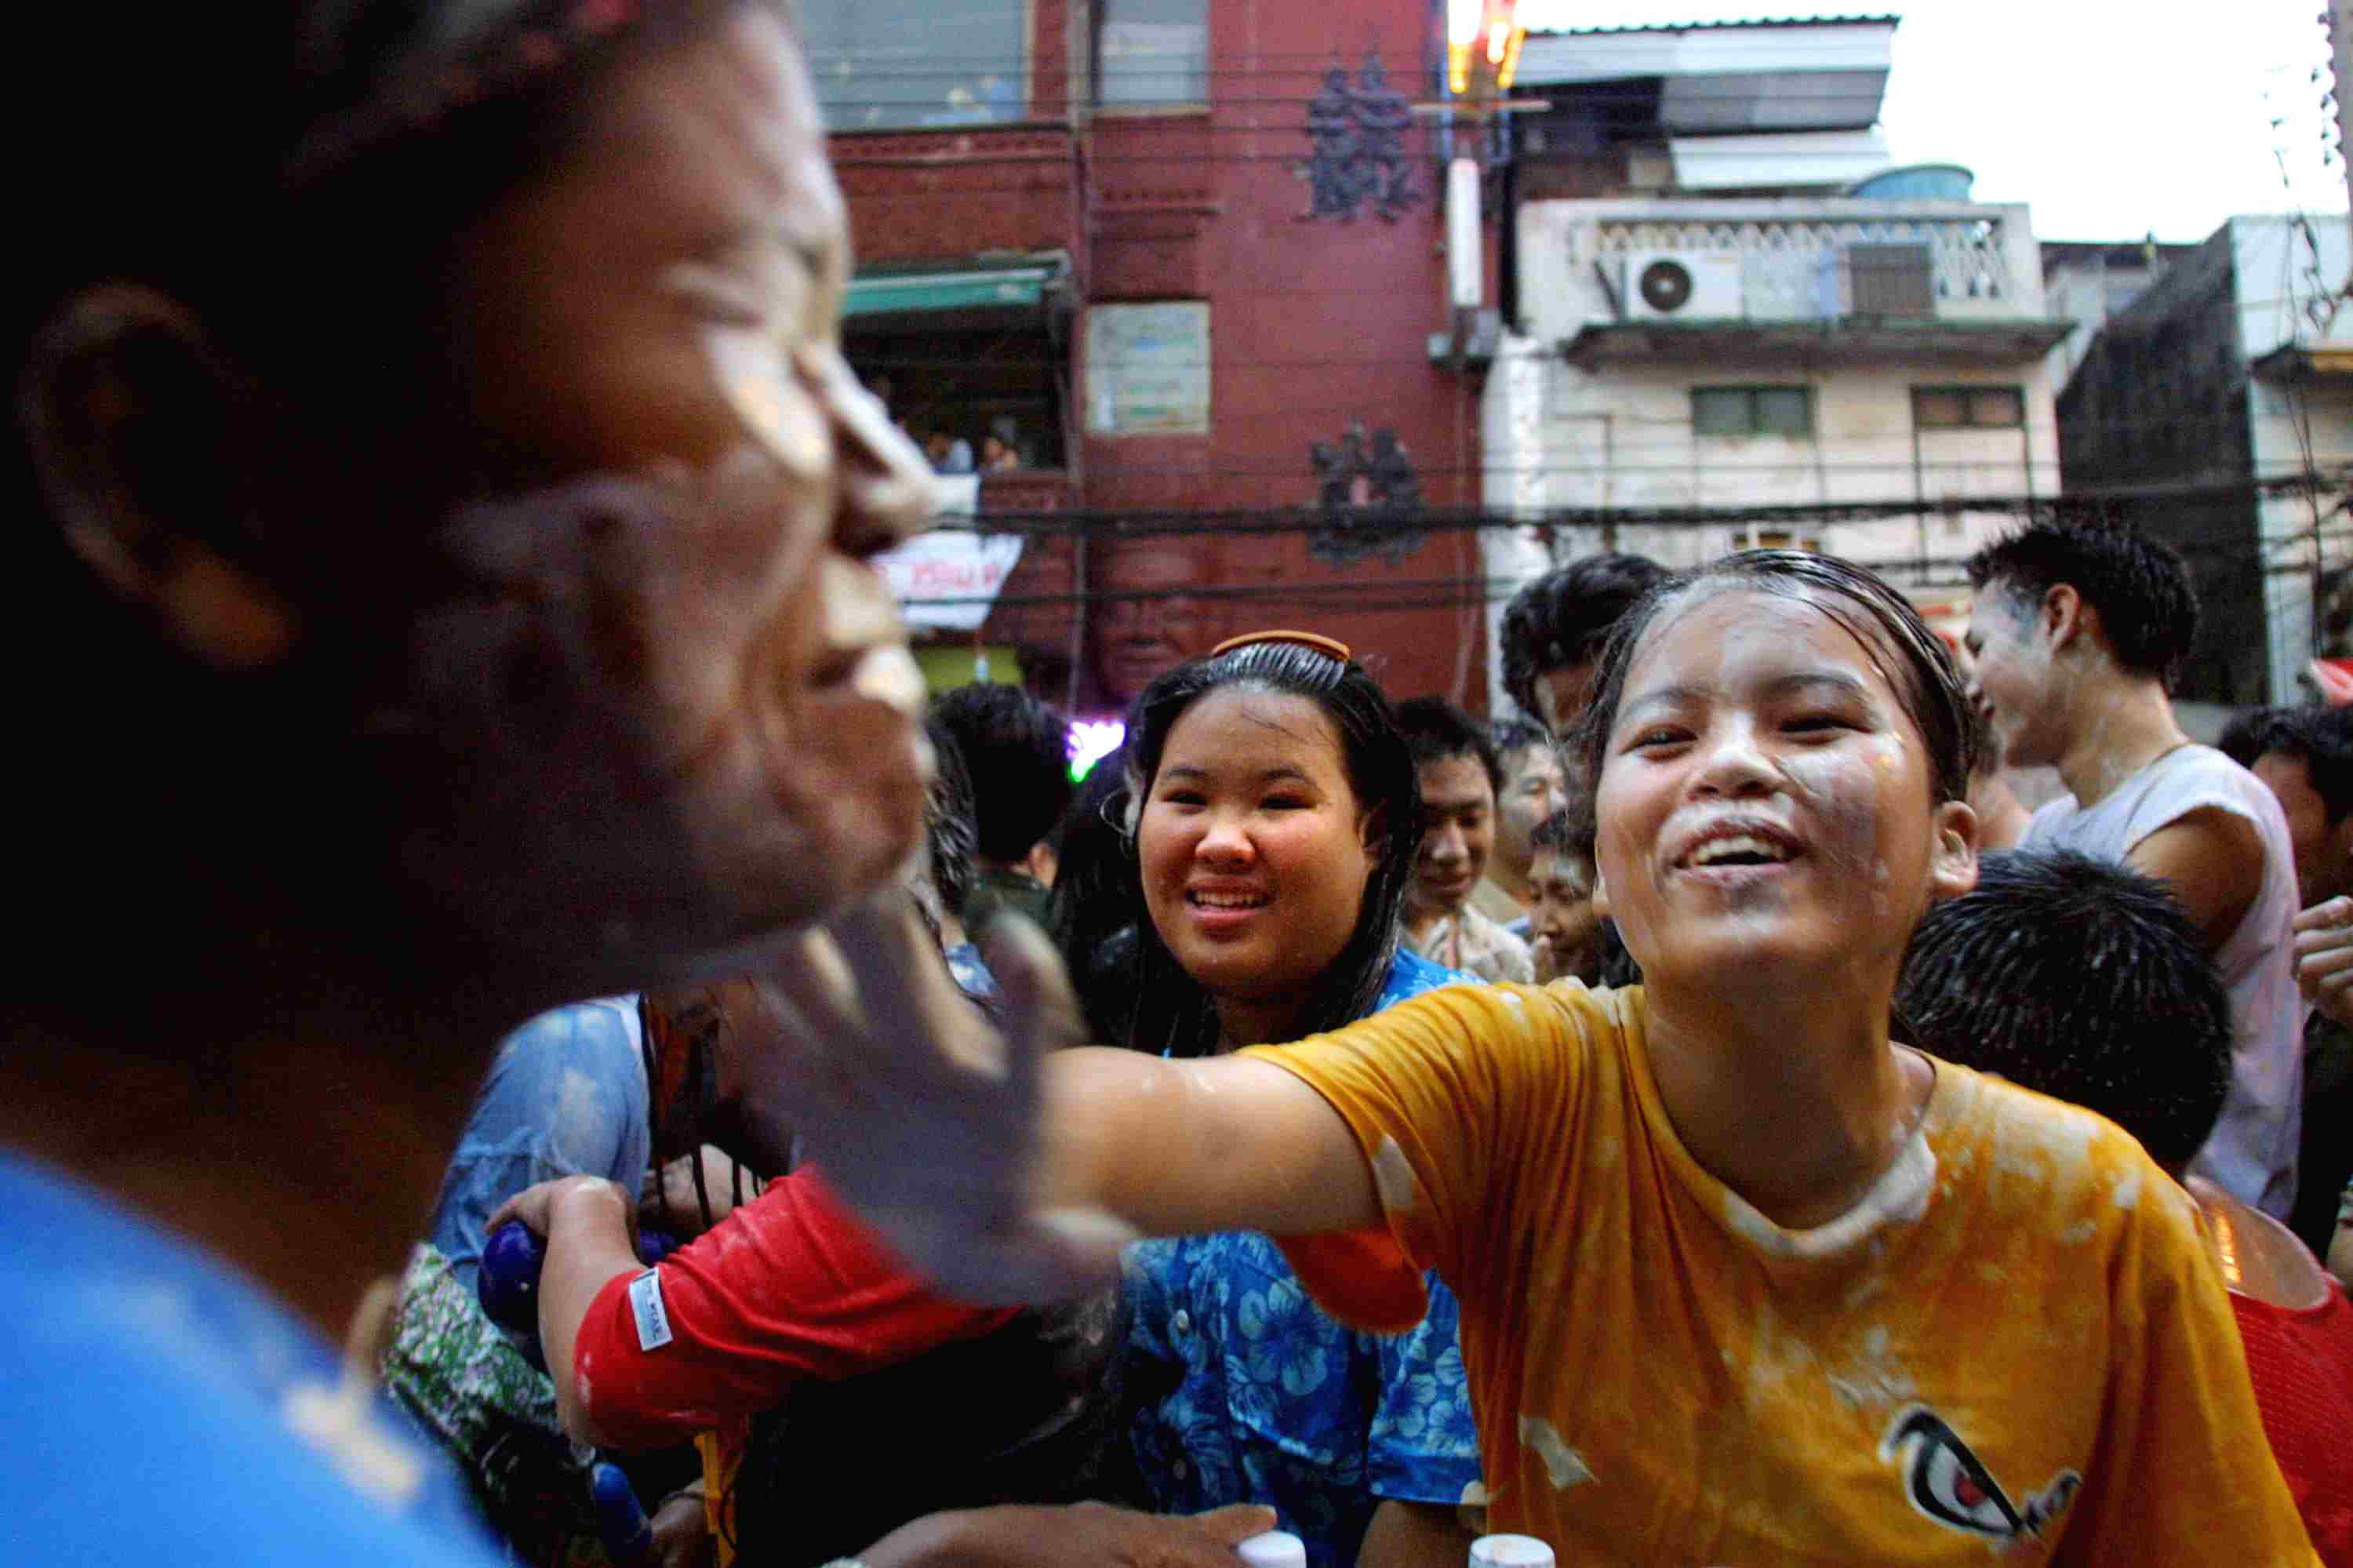 A woman smears a man with white paste during Songkran celebrations